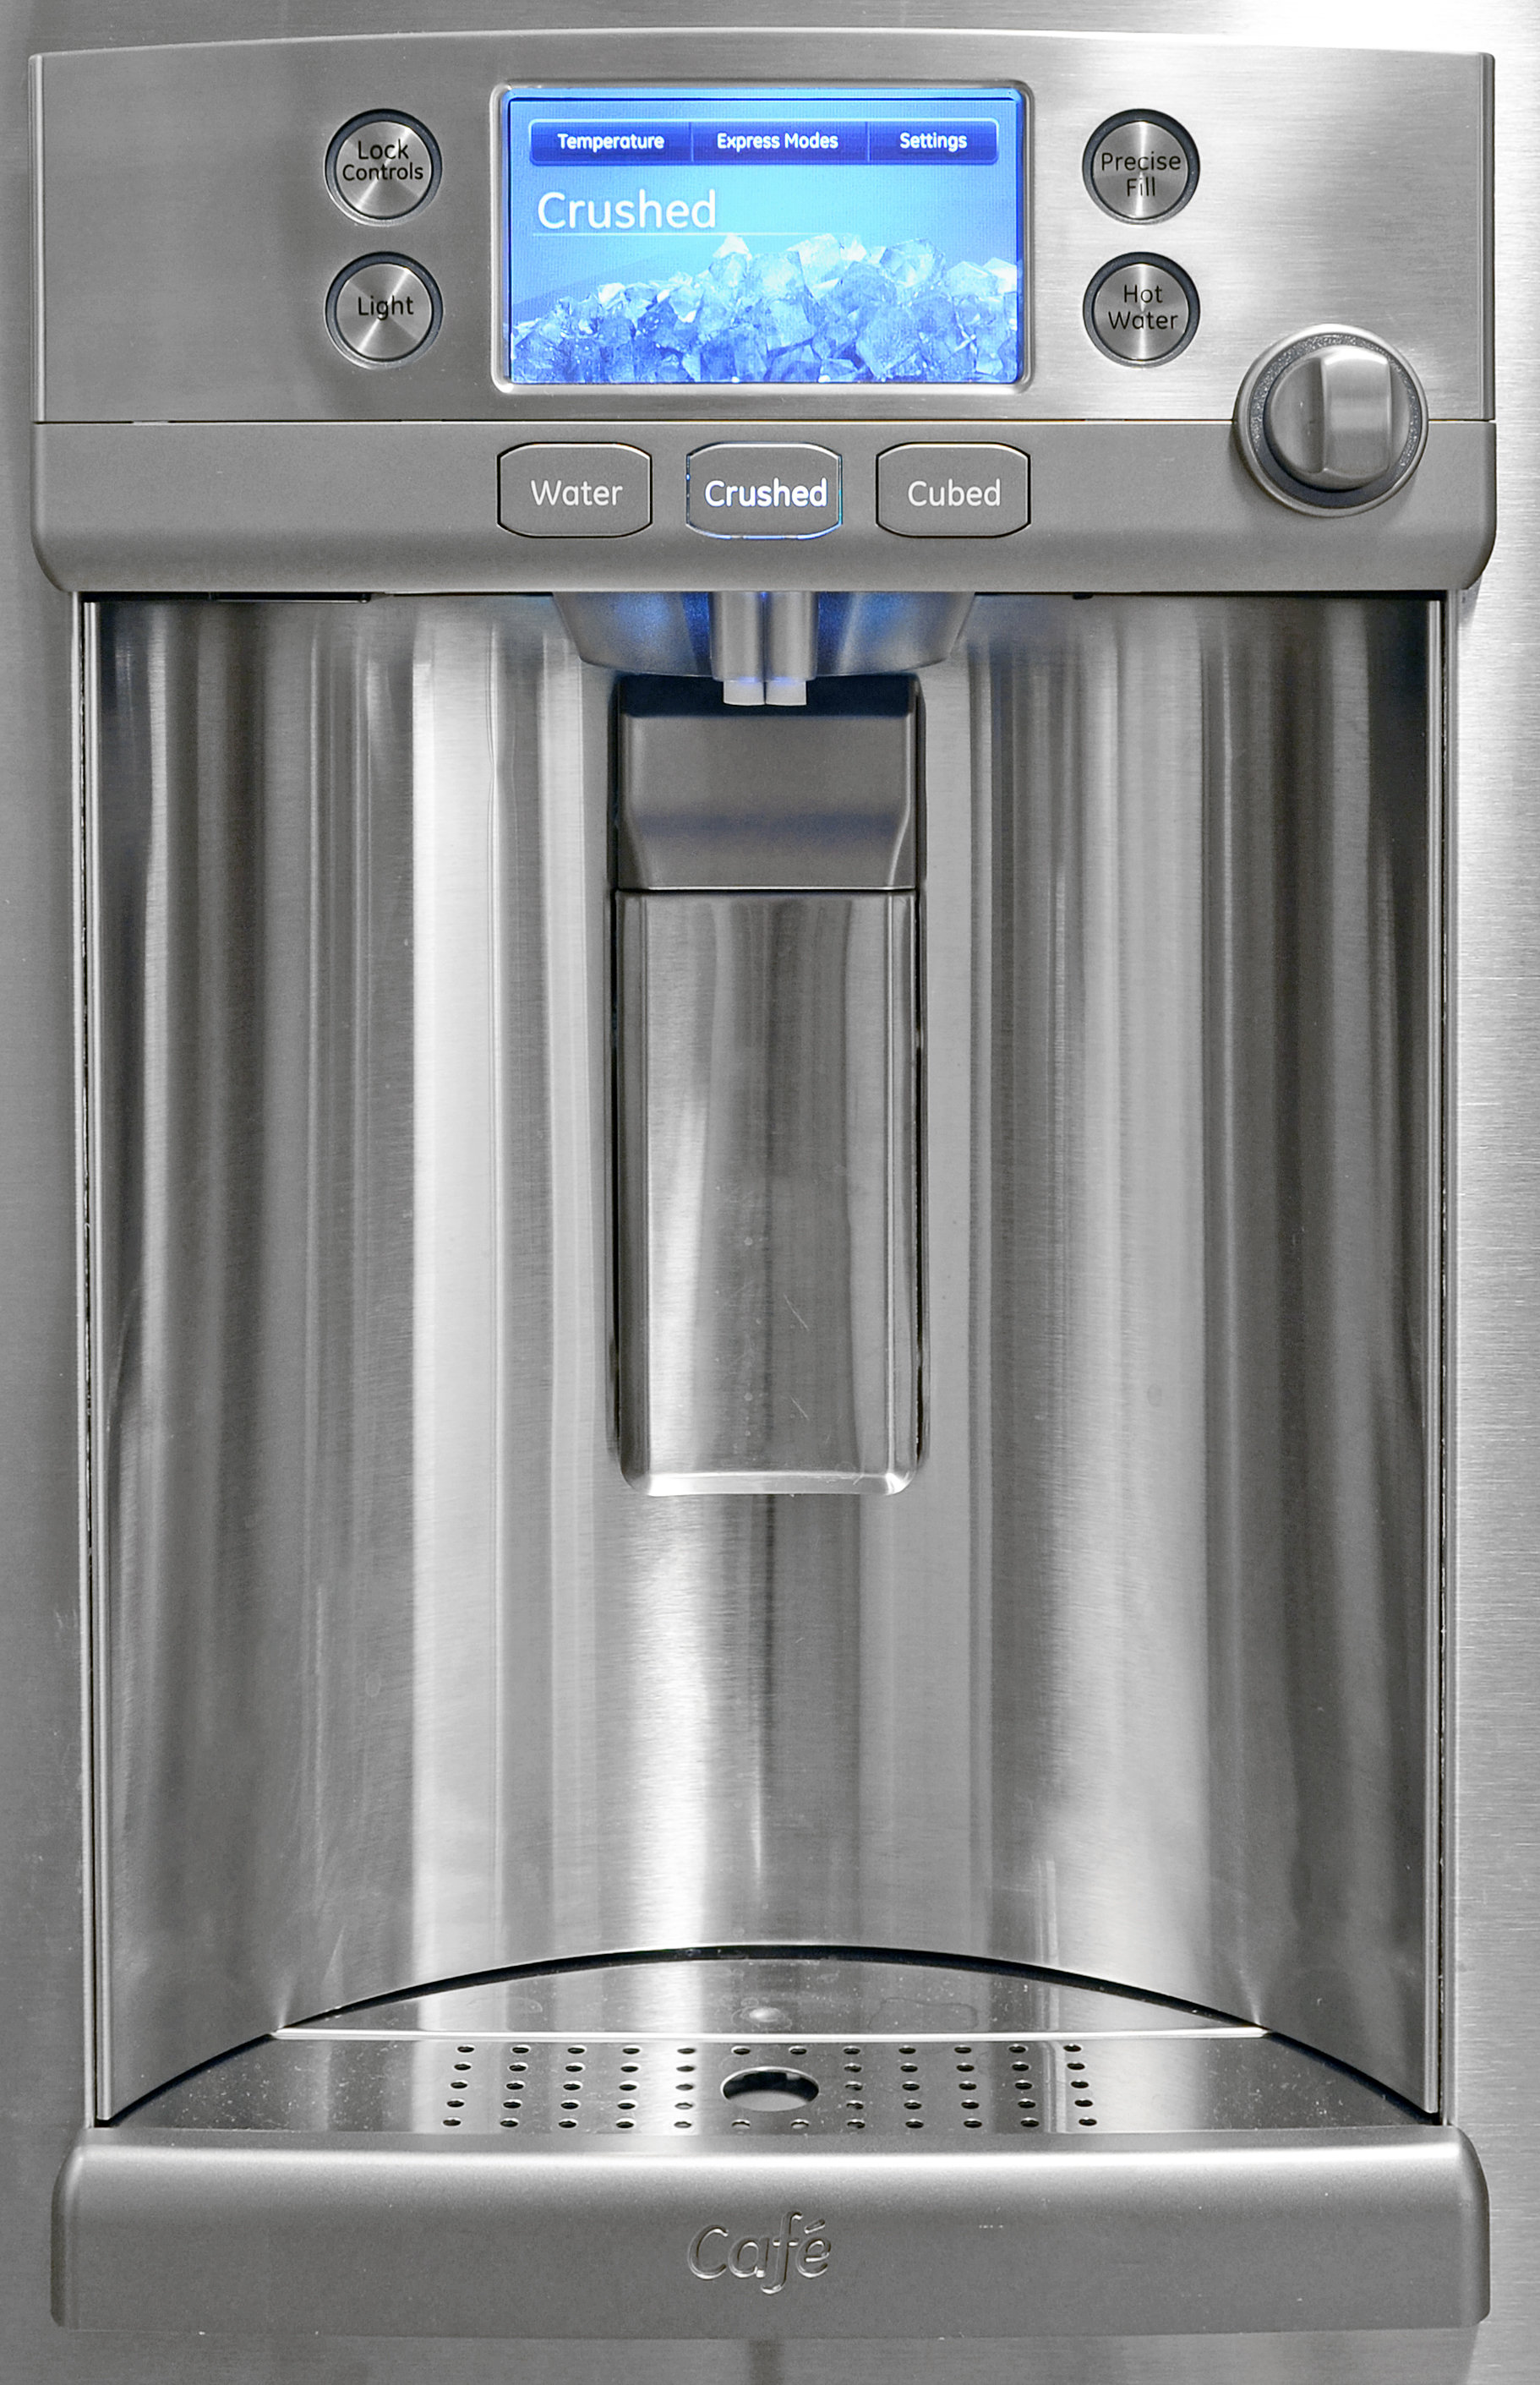 The GE Cafe CFE28TSHSS's dispenser is unusually tall, making it easier to fill everything from a drinking glass to an empty water jug.